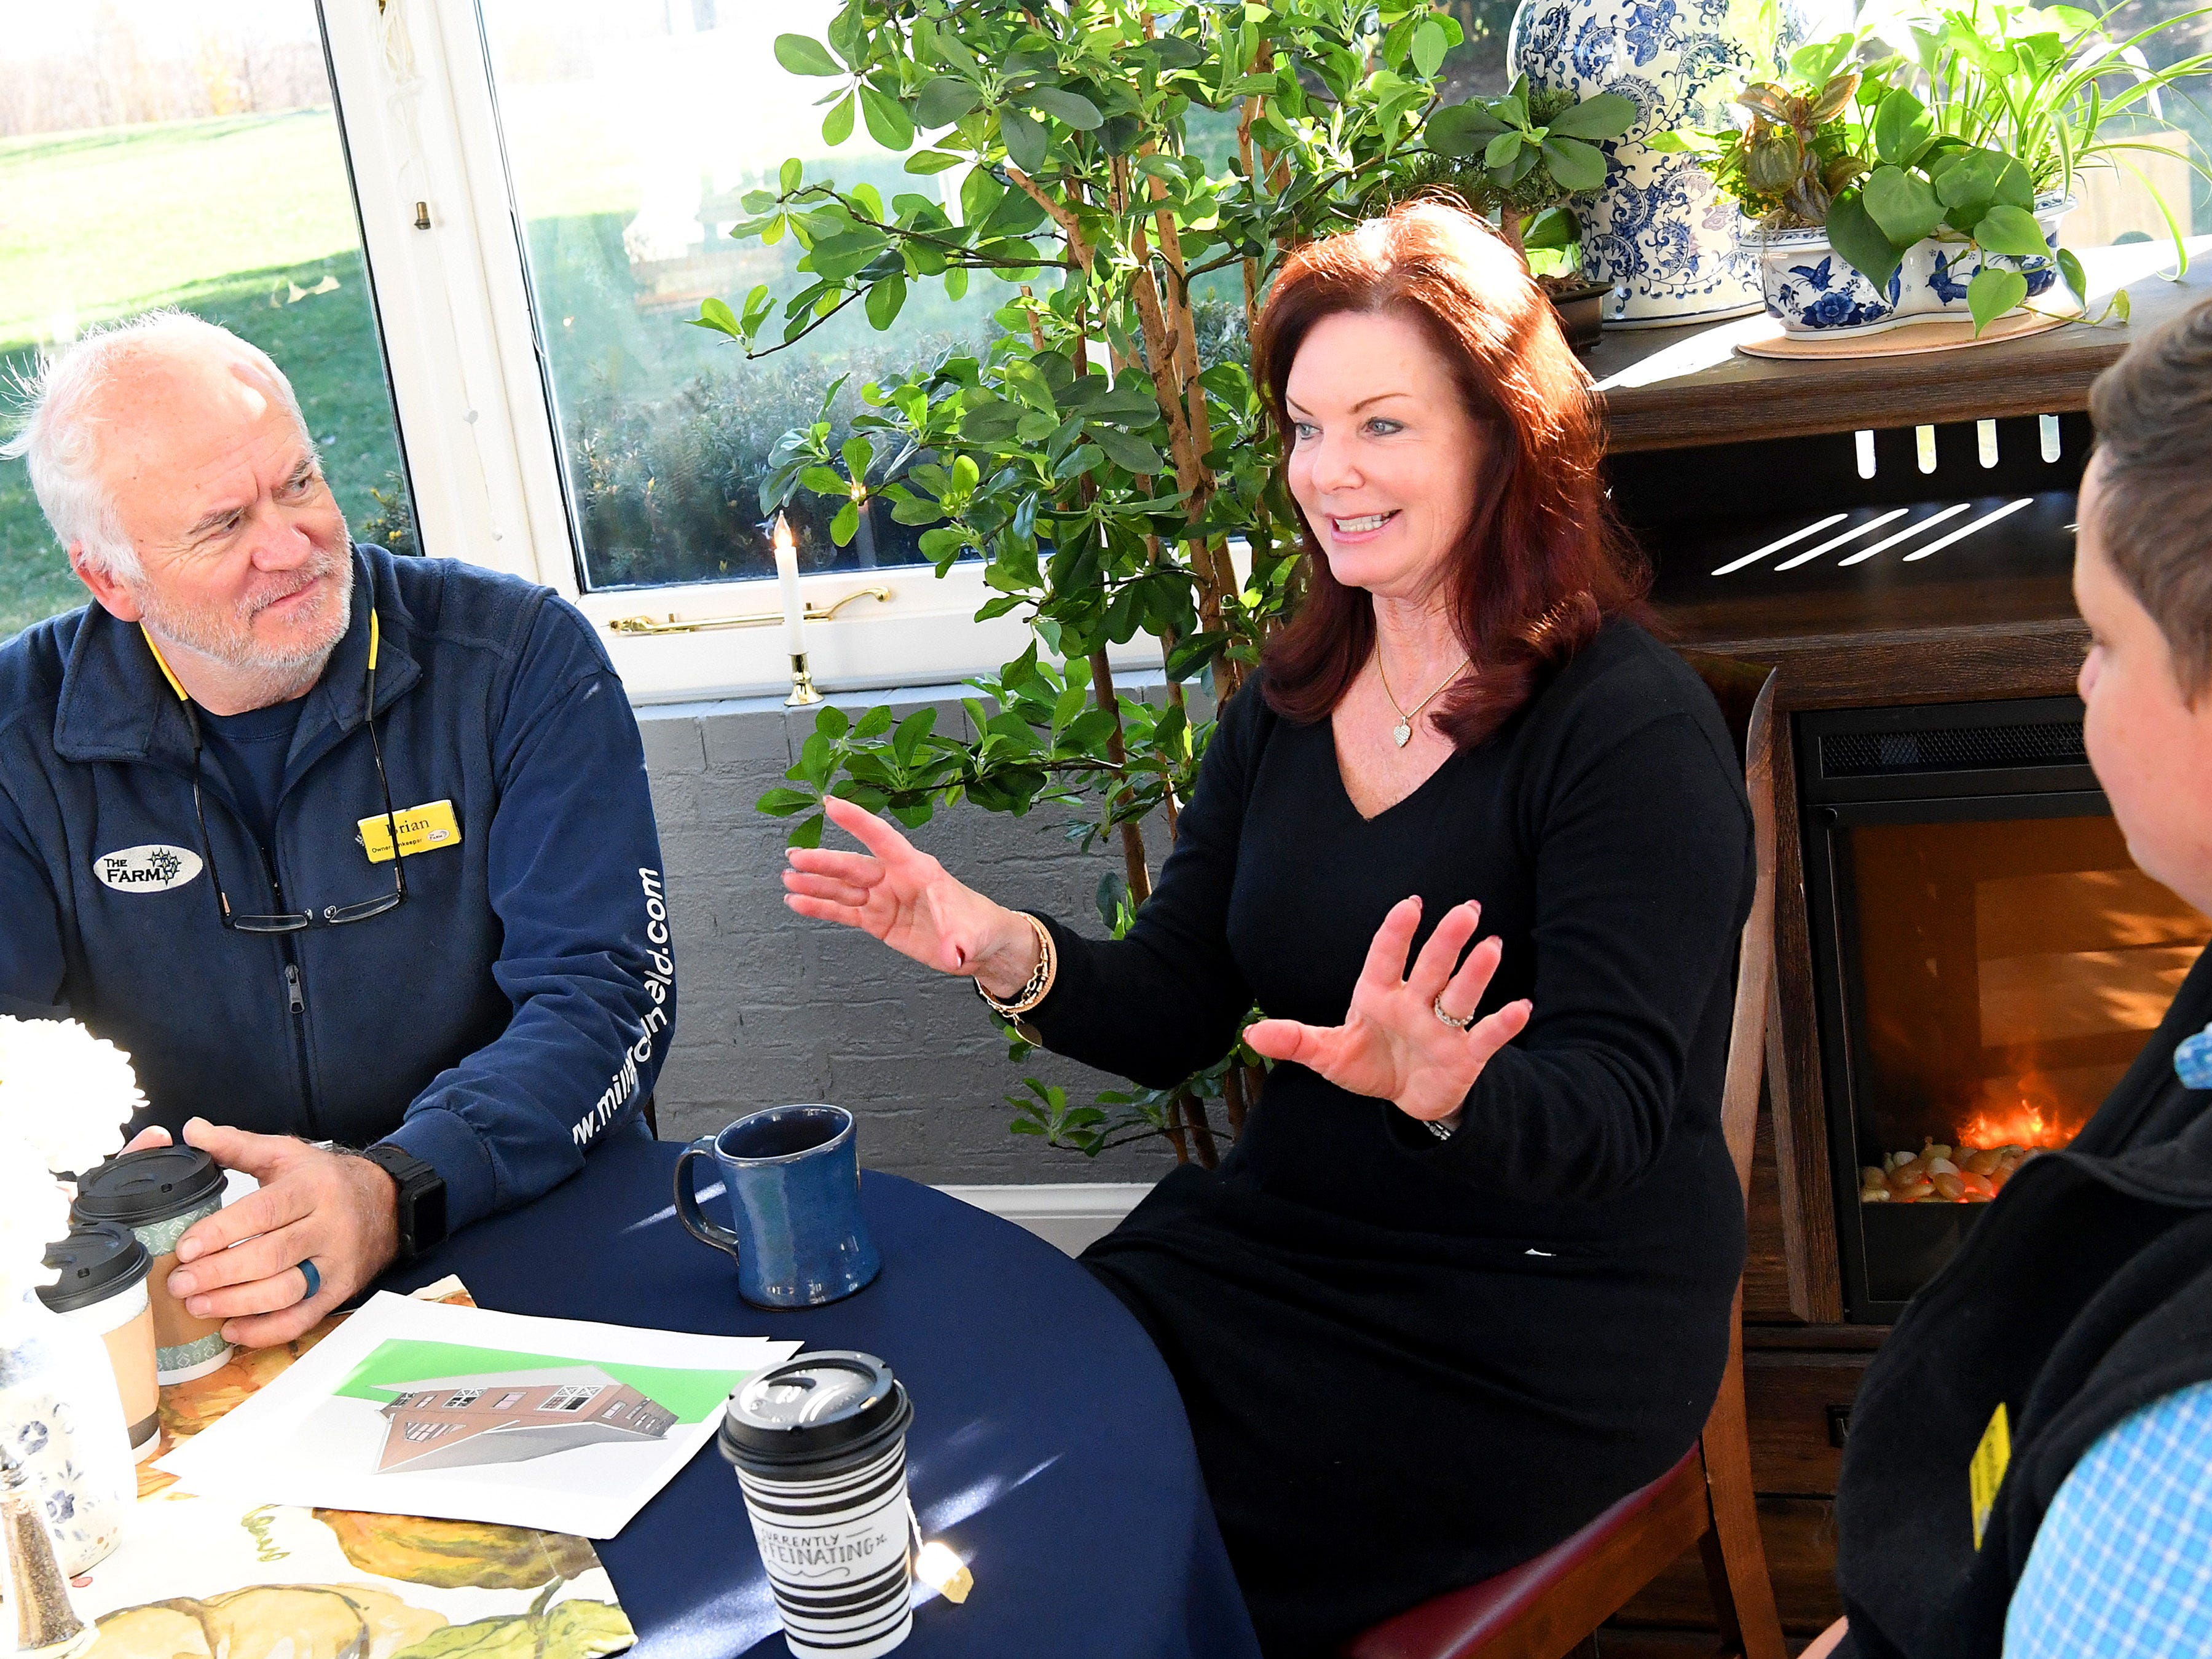 Co-owner and innkeeper Katherine Rook talks about plans for the inn, sitting next to co-owner and fellow innkeeper  Brian Westenberg, during an interview at the Inn at WestShire Farms in Staunton on Wednesday, Nov. 28, 2018.